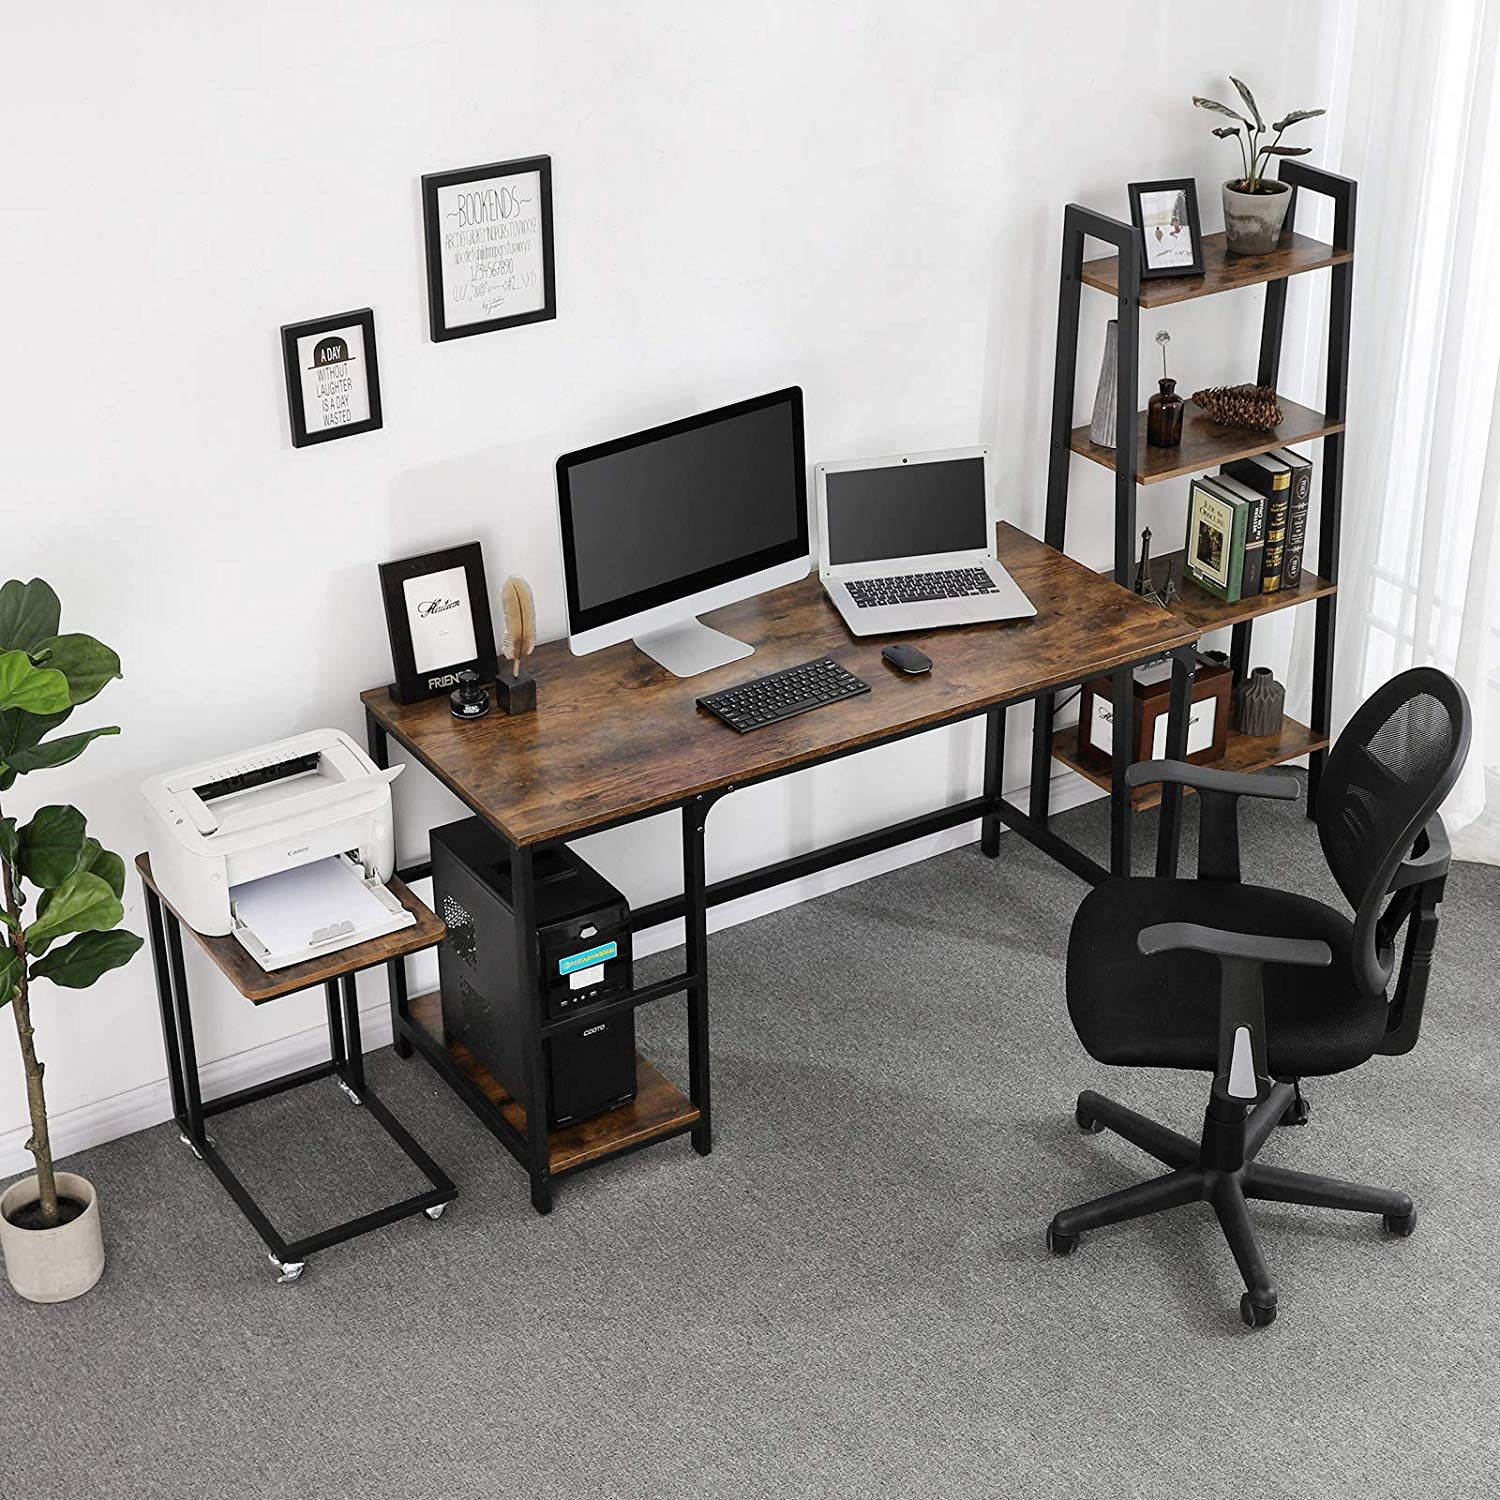 Black and Brown Industrial 55 Inch Wood and Metal Desk with 2 Shelves